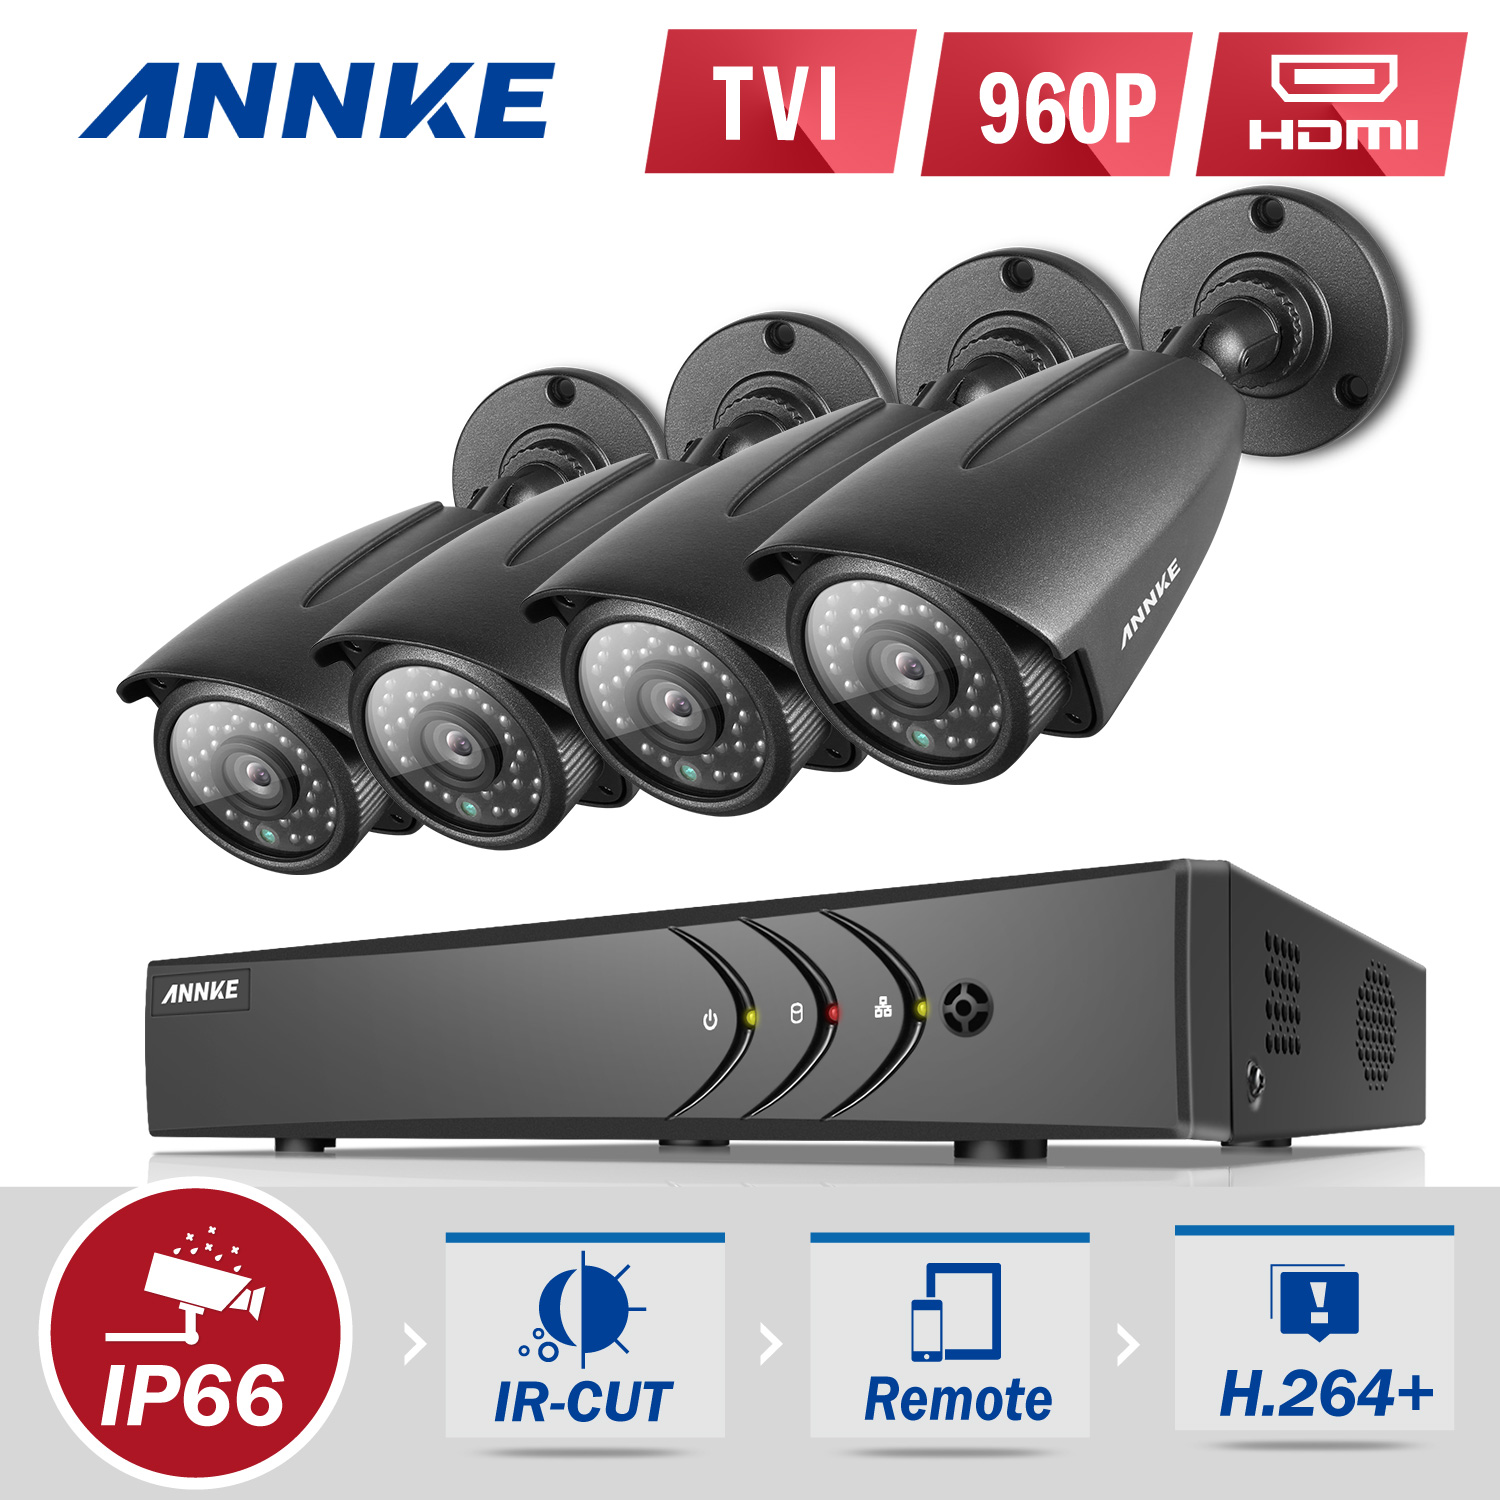 ANNKE 8CH 1080P HDMI DVR Outdoor Dome CCTV Video Home Security 4Pcs 960P Weatherproof Camera System Surveillance Kits With NO HDD